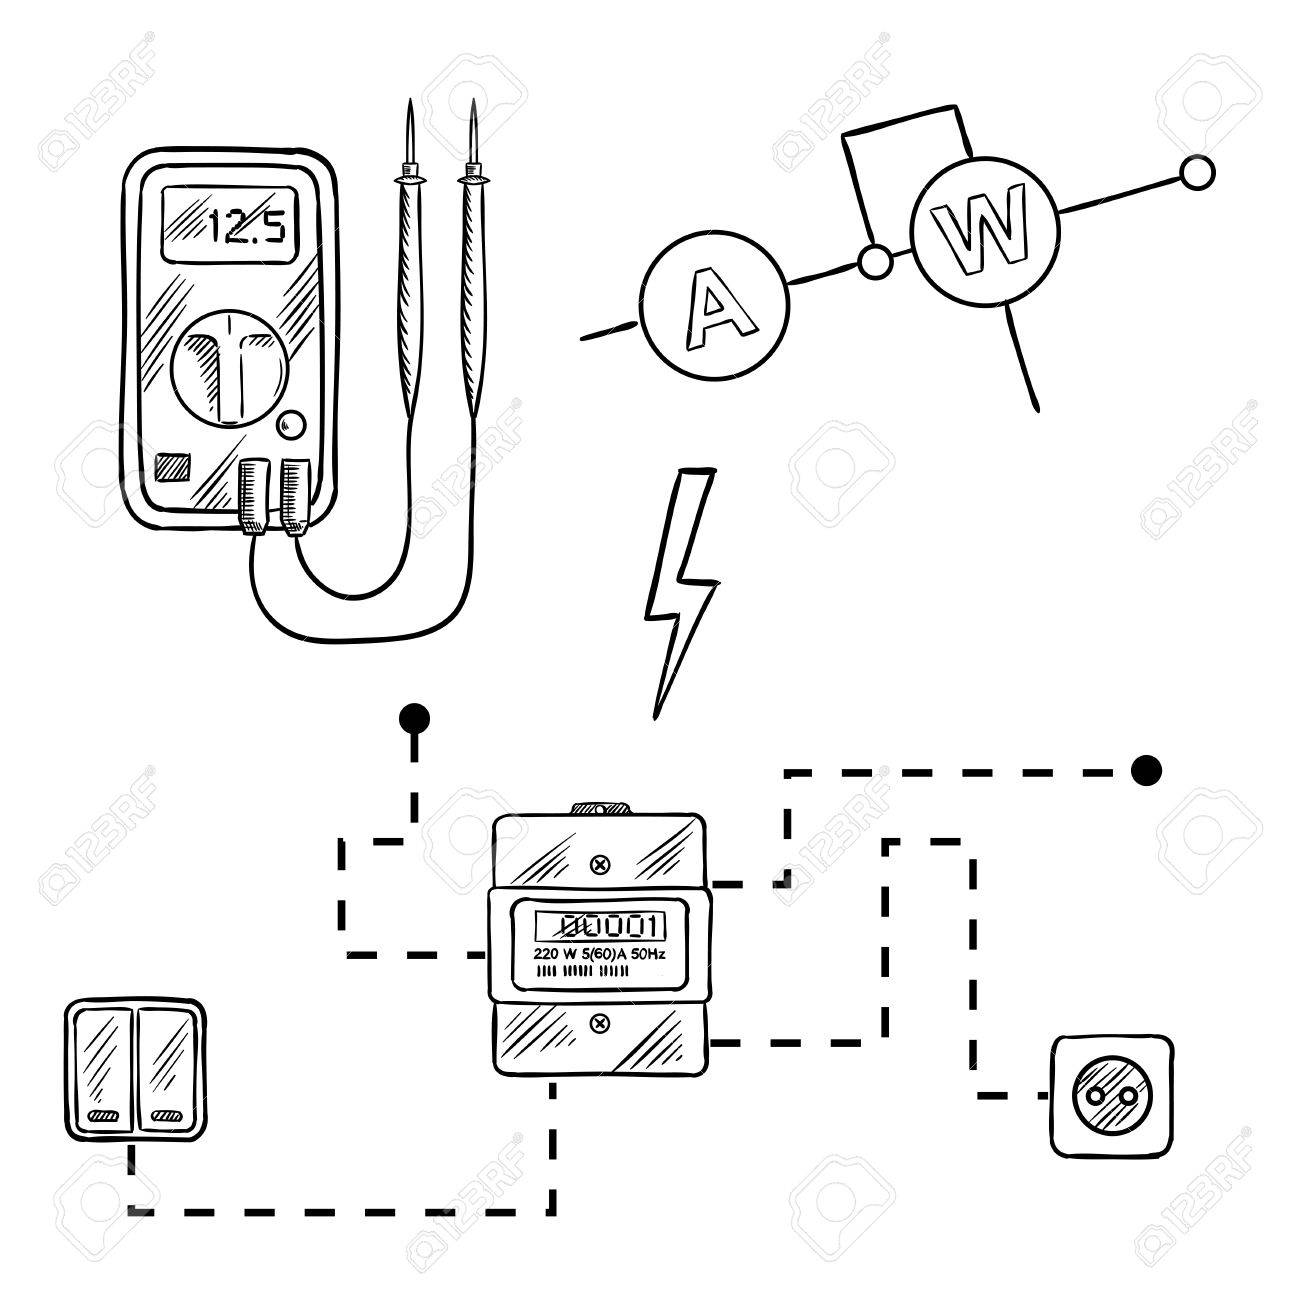 Digital Voltmeter, Electricity Meter With Socket And Switches ... on condensate splitter diagram, volt meter electronic schematic diagrams, condensation diagram, water meter installation diagram,